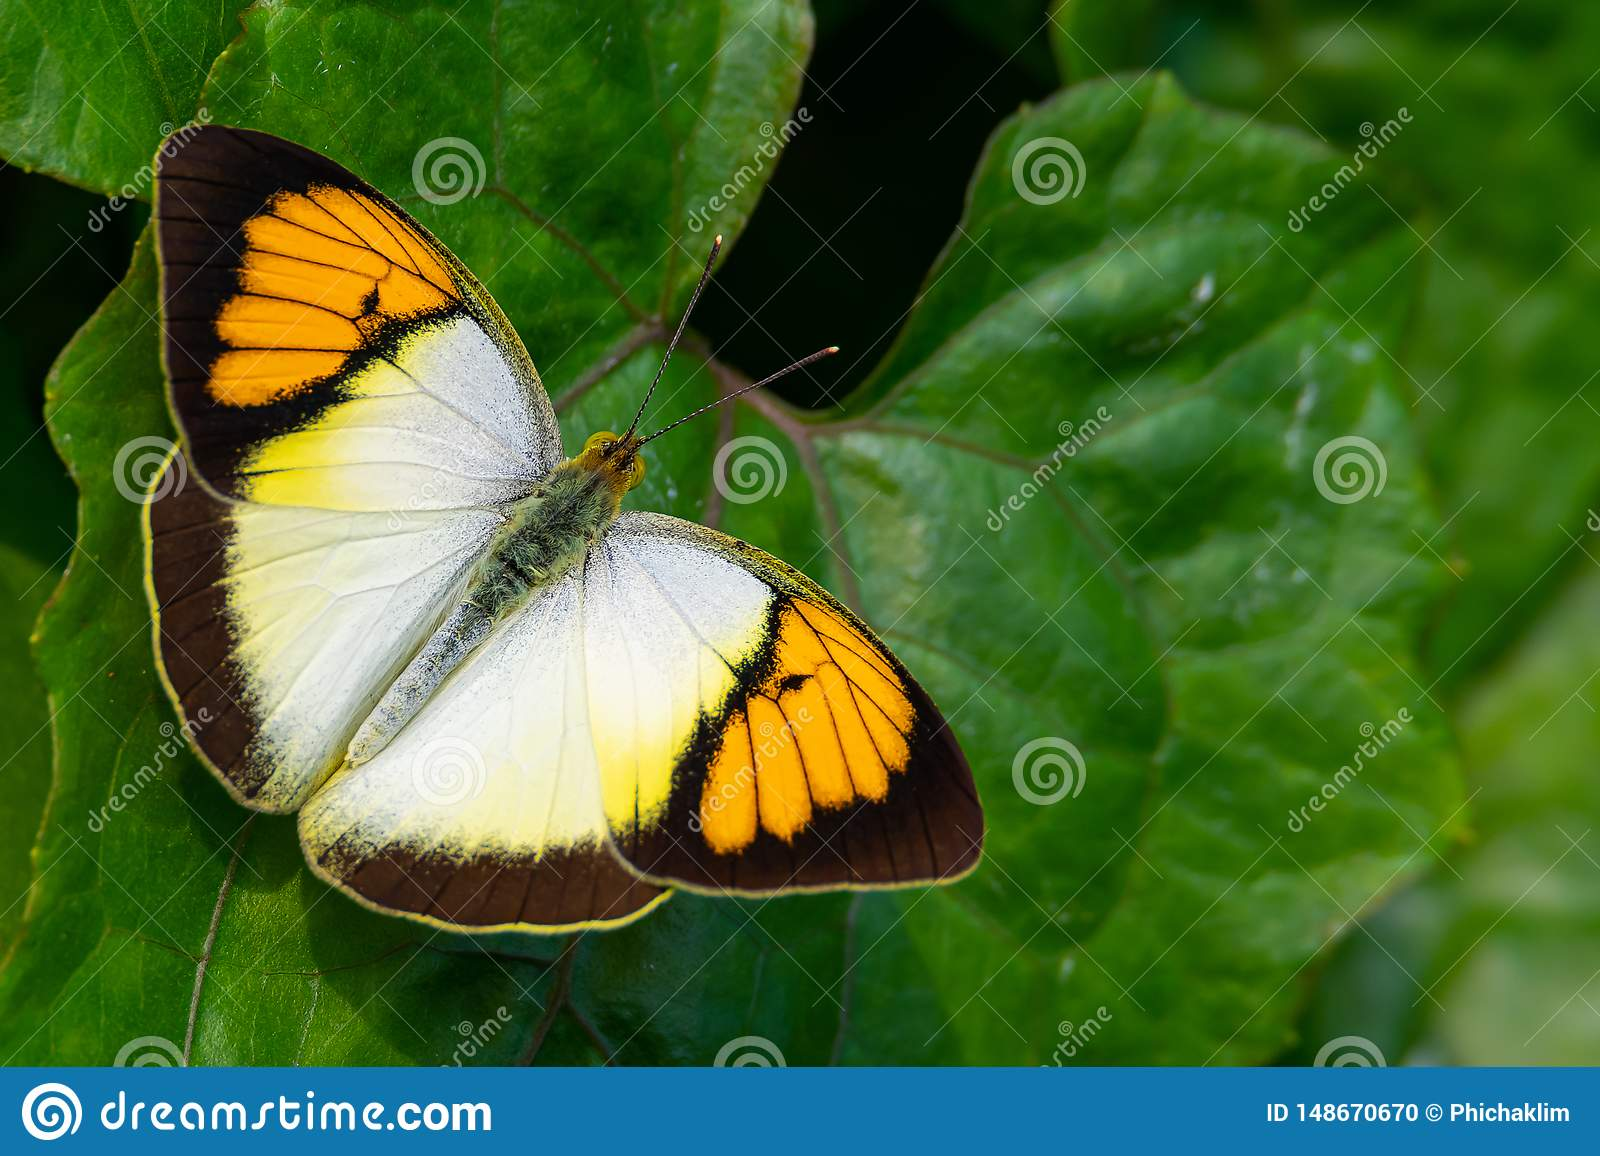 Yellow Orange Tip butterfly perching on leaf in a prominent, sunny position